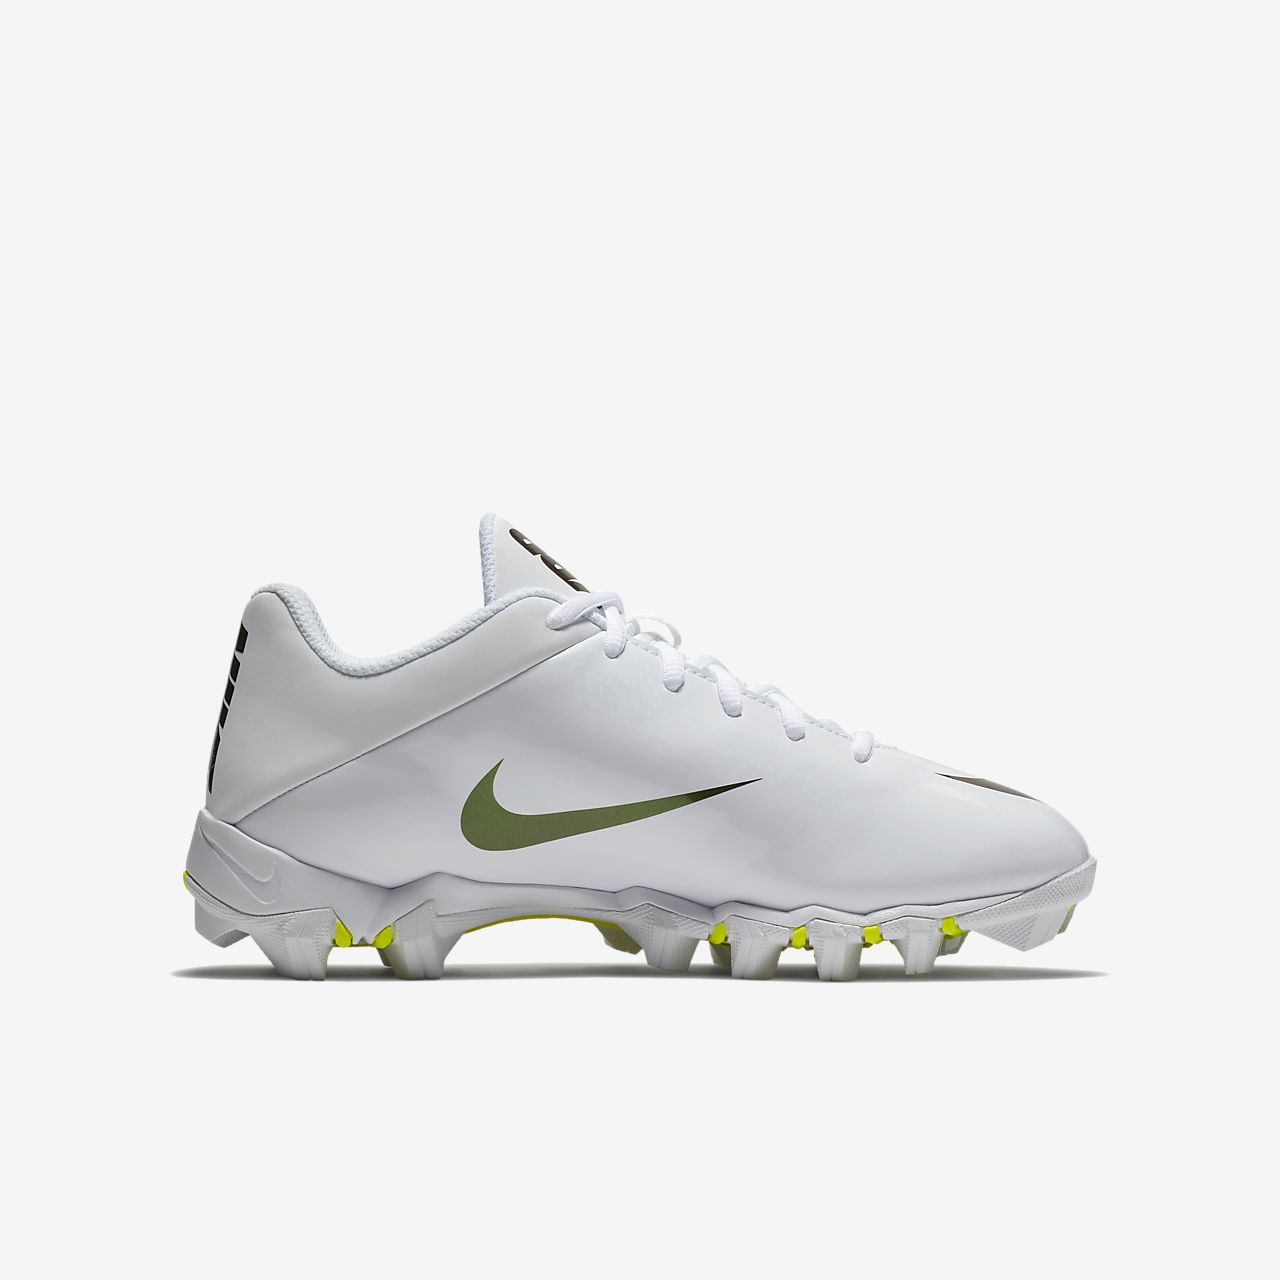 ... Nike Vapor Shark 2 Little/Big Kids' Football Cleat